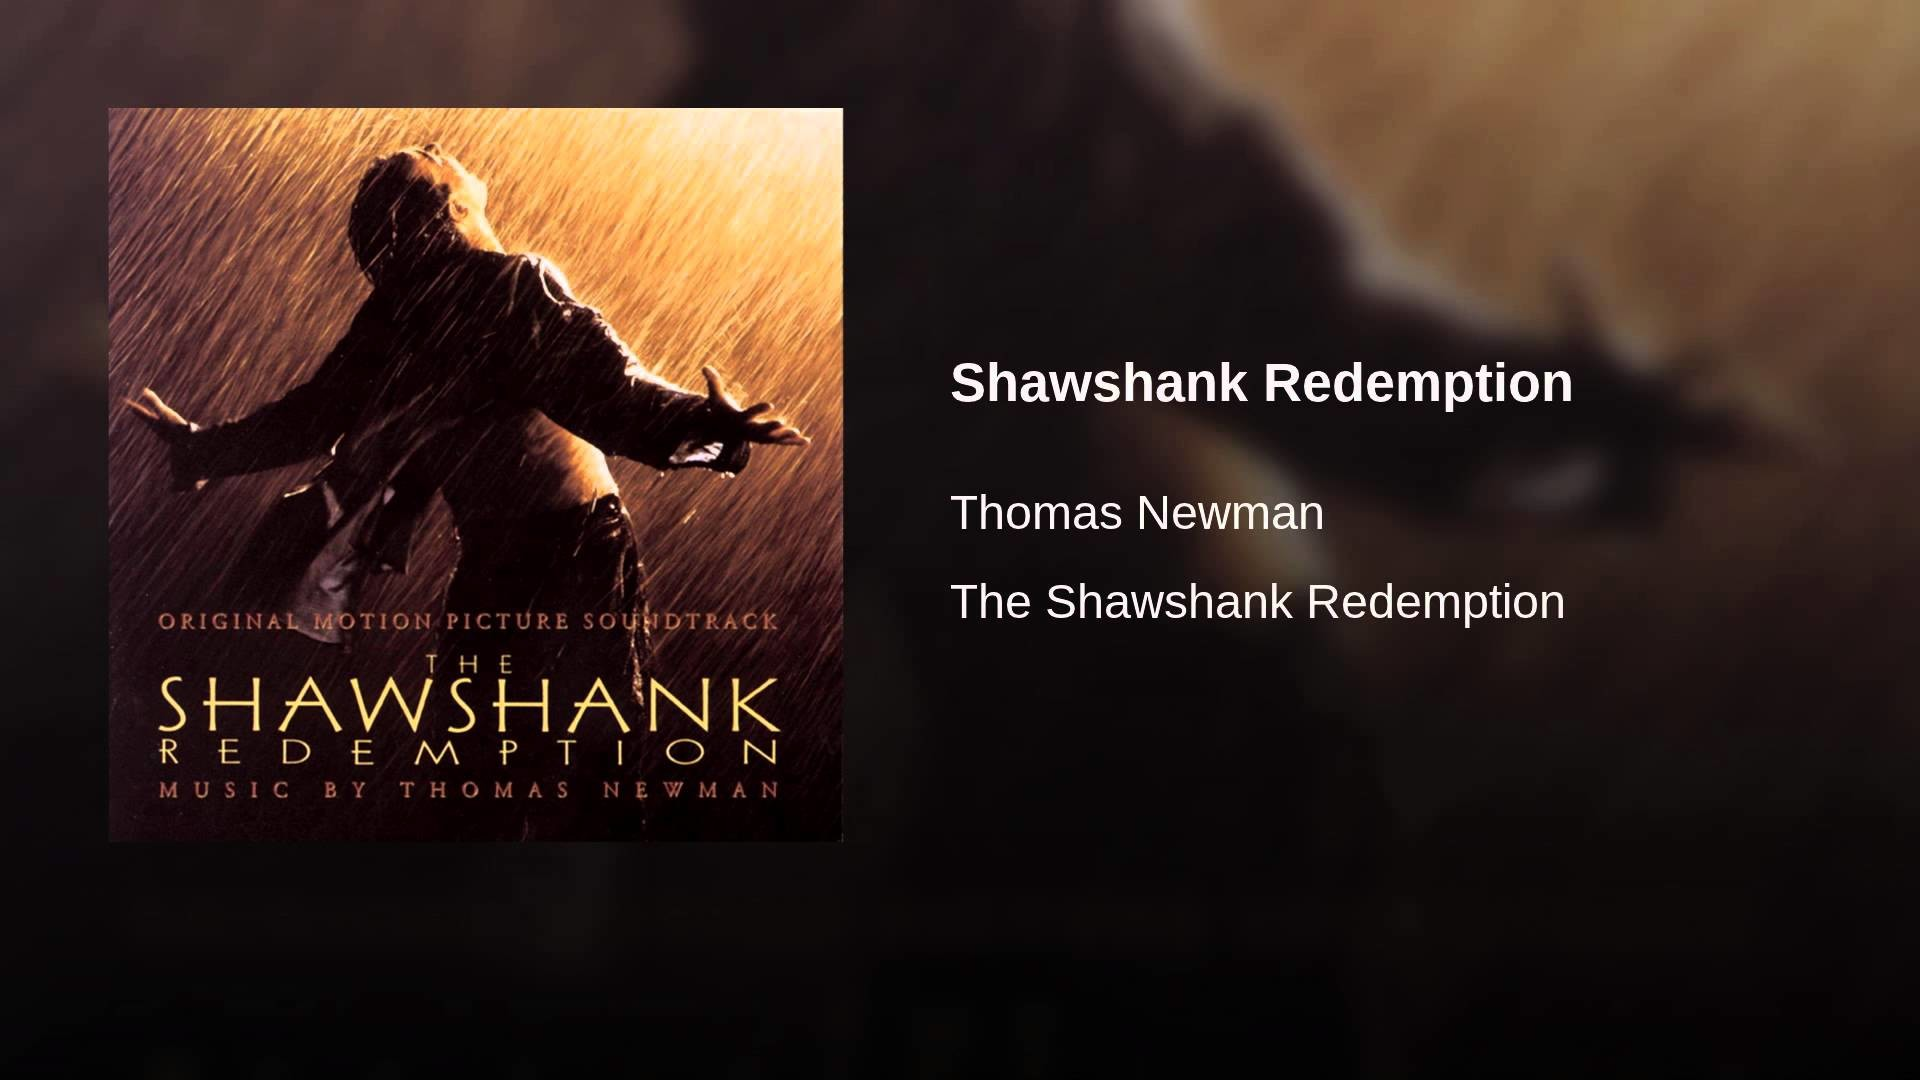 theme of shawshank redemption The shawshank redemption is a 1994 american drama film written and directed by frank which plays along the main character's role at shawshank the main theme.